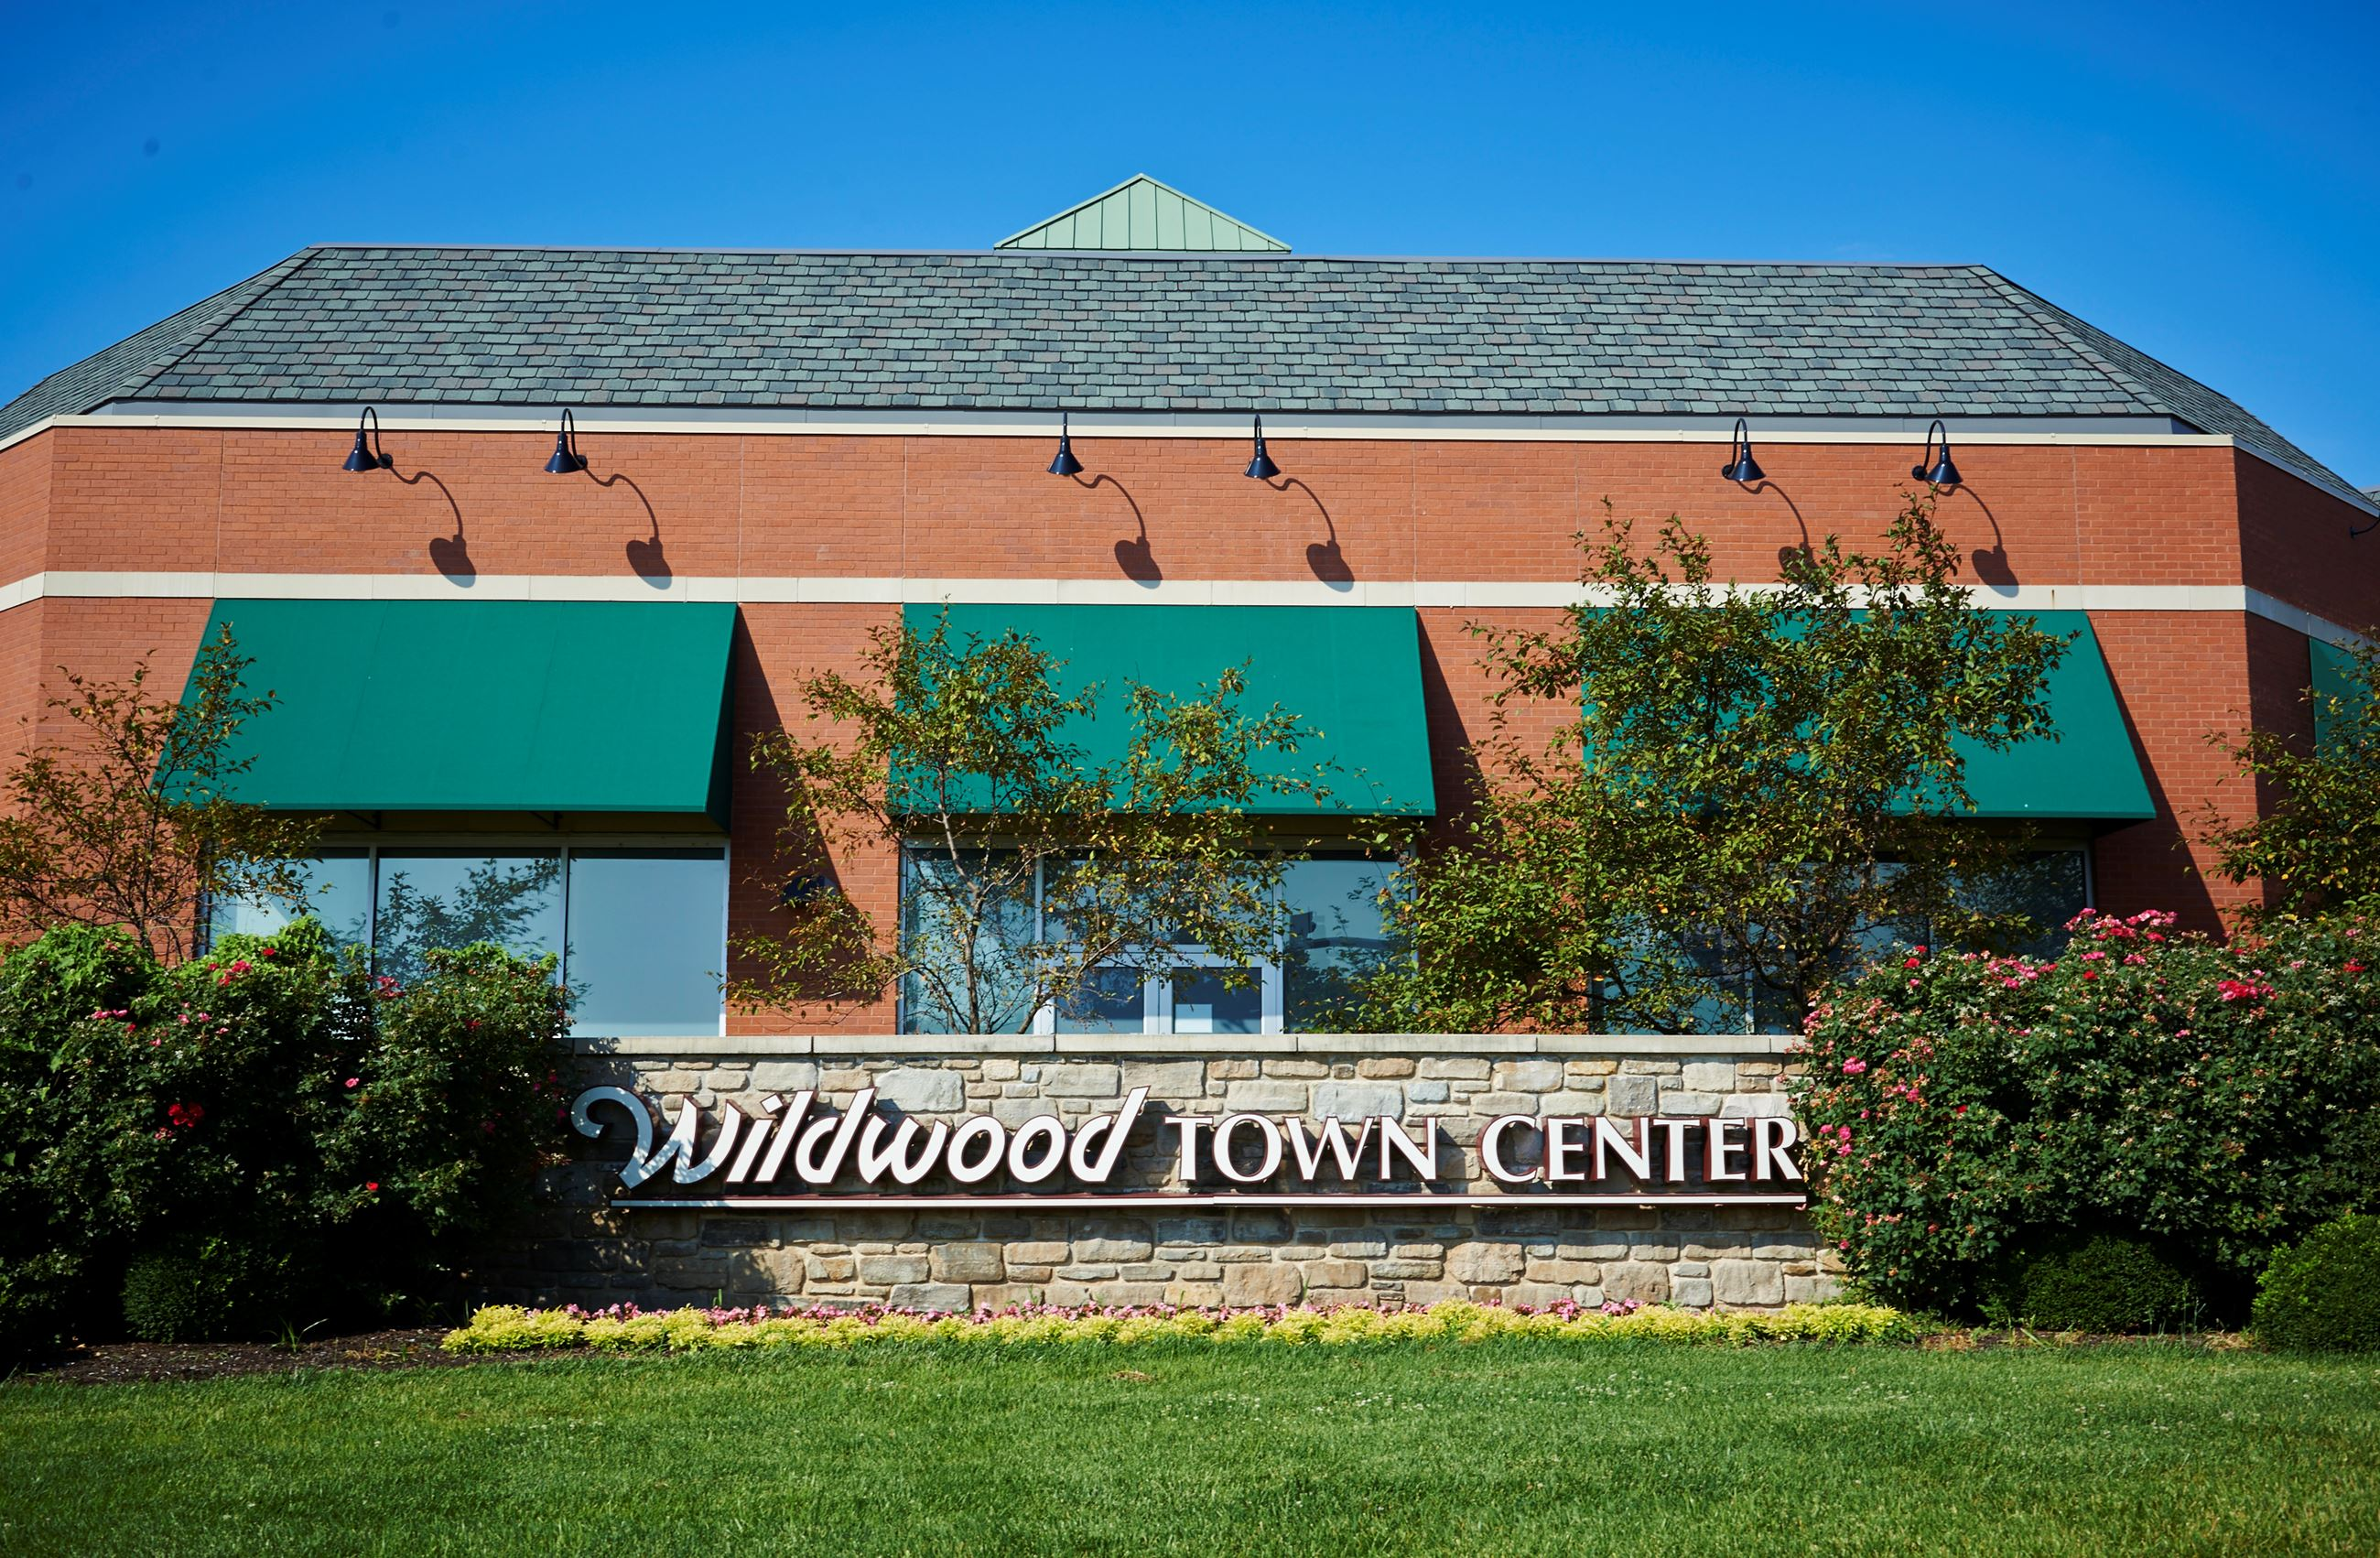 Wildwood Town Center sign in front of building